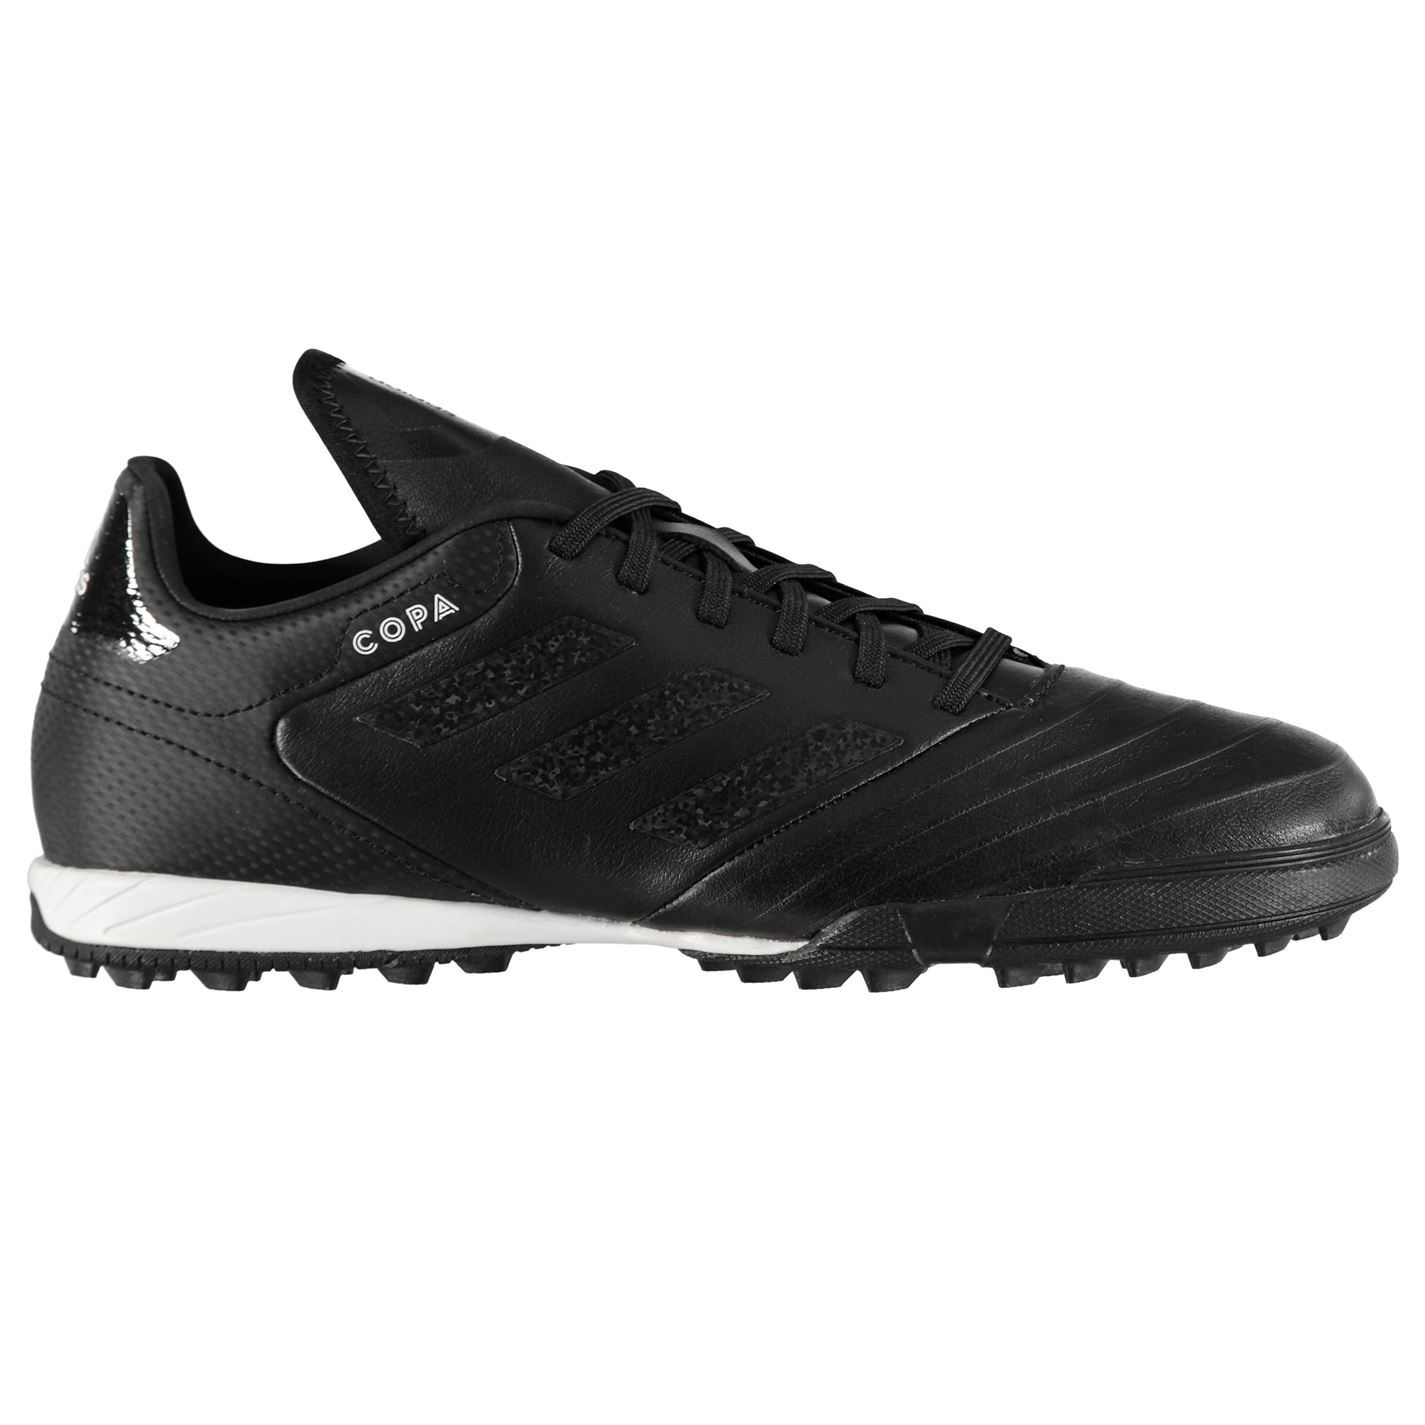 save off 588f4 18fde adidas Copa Tango 18.3 Astro Turf Football Trainers Mens Black Soccer Shoes